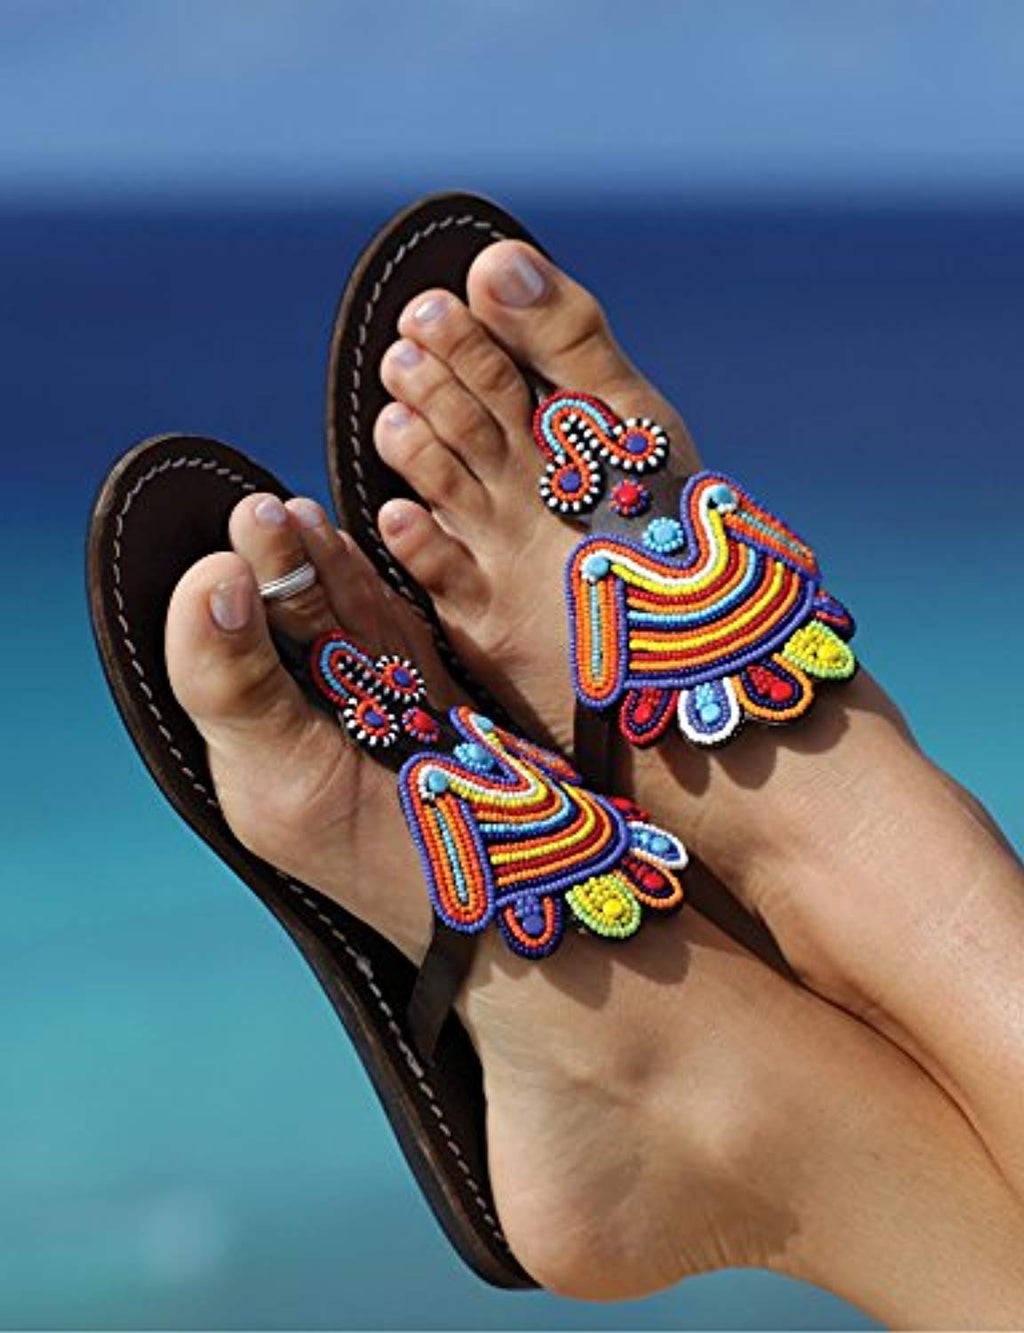 Reef sandy bead sandal shoes for women | Handmade summer beaded reef flip flops for women